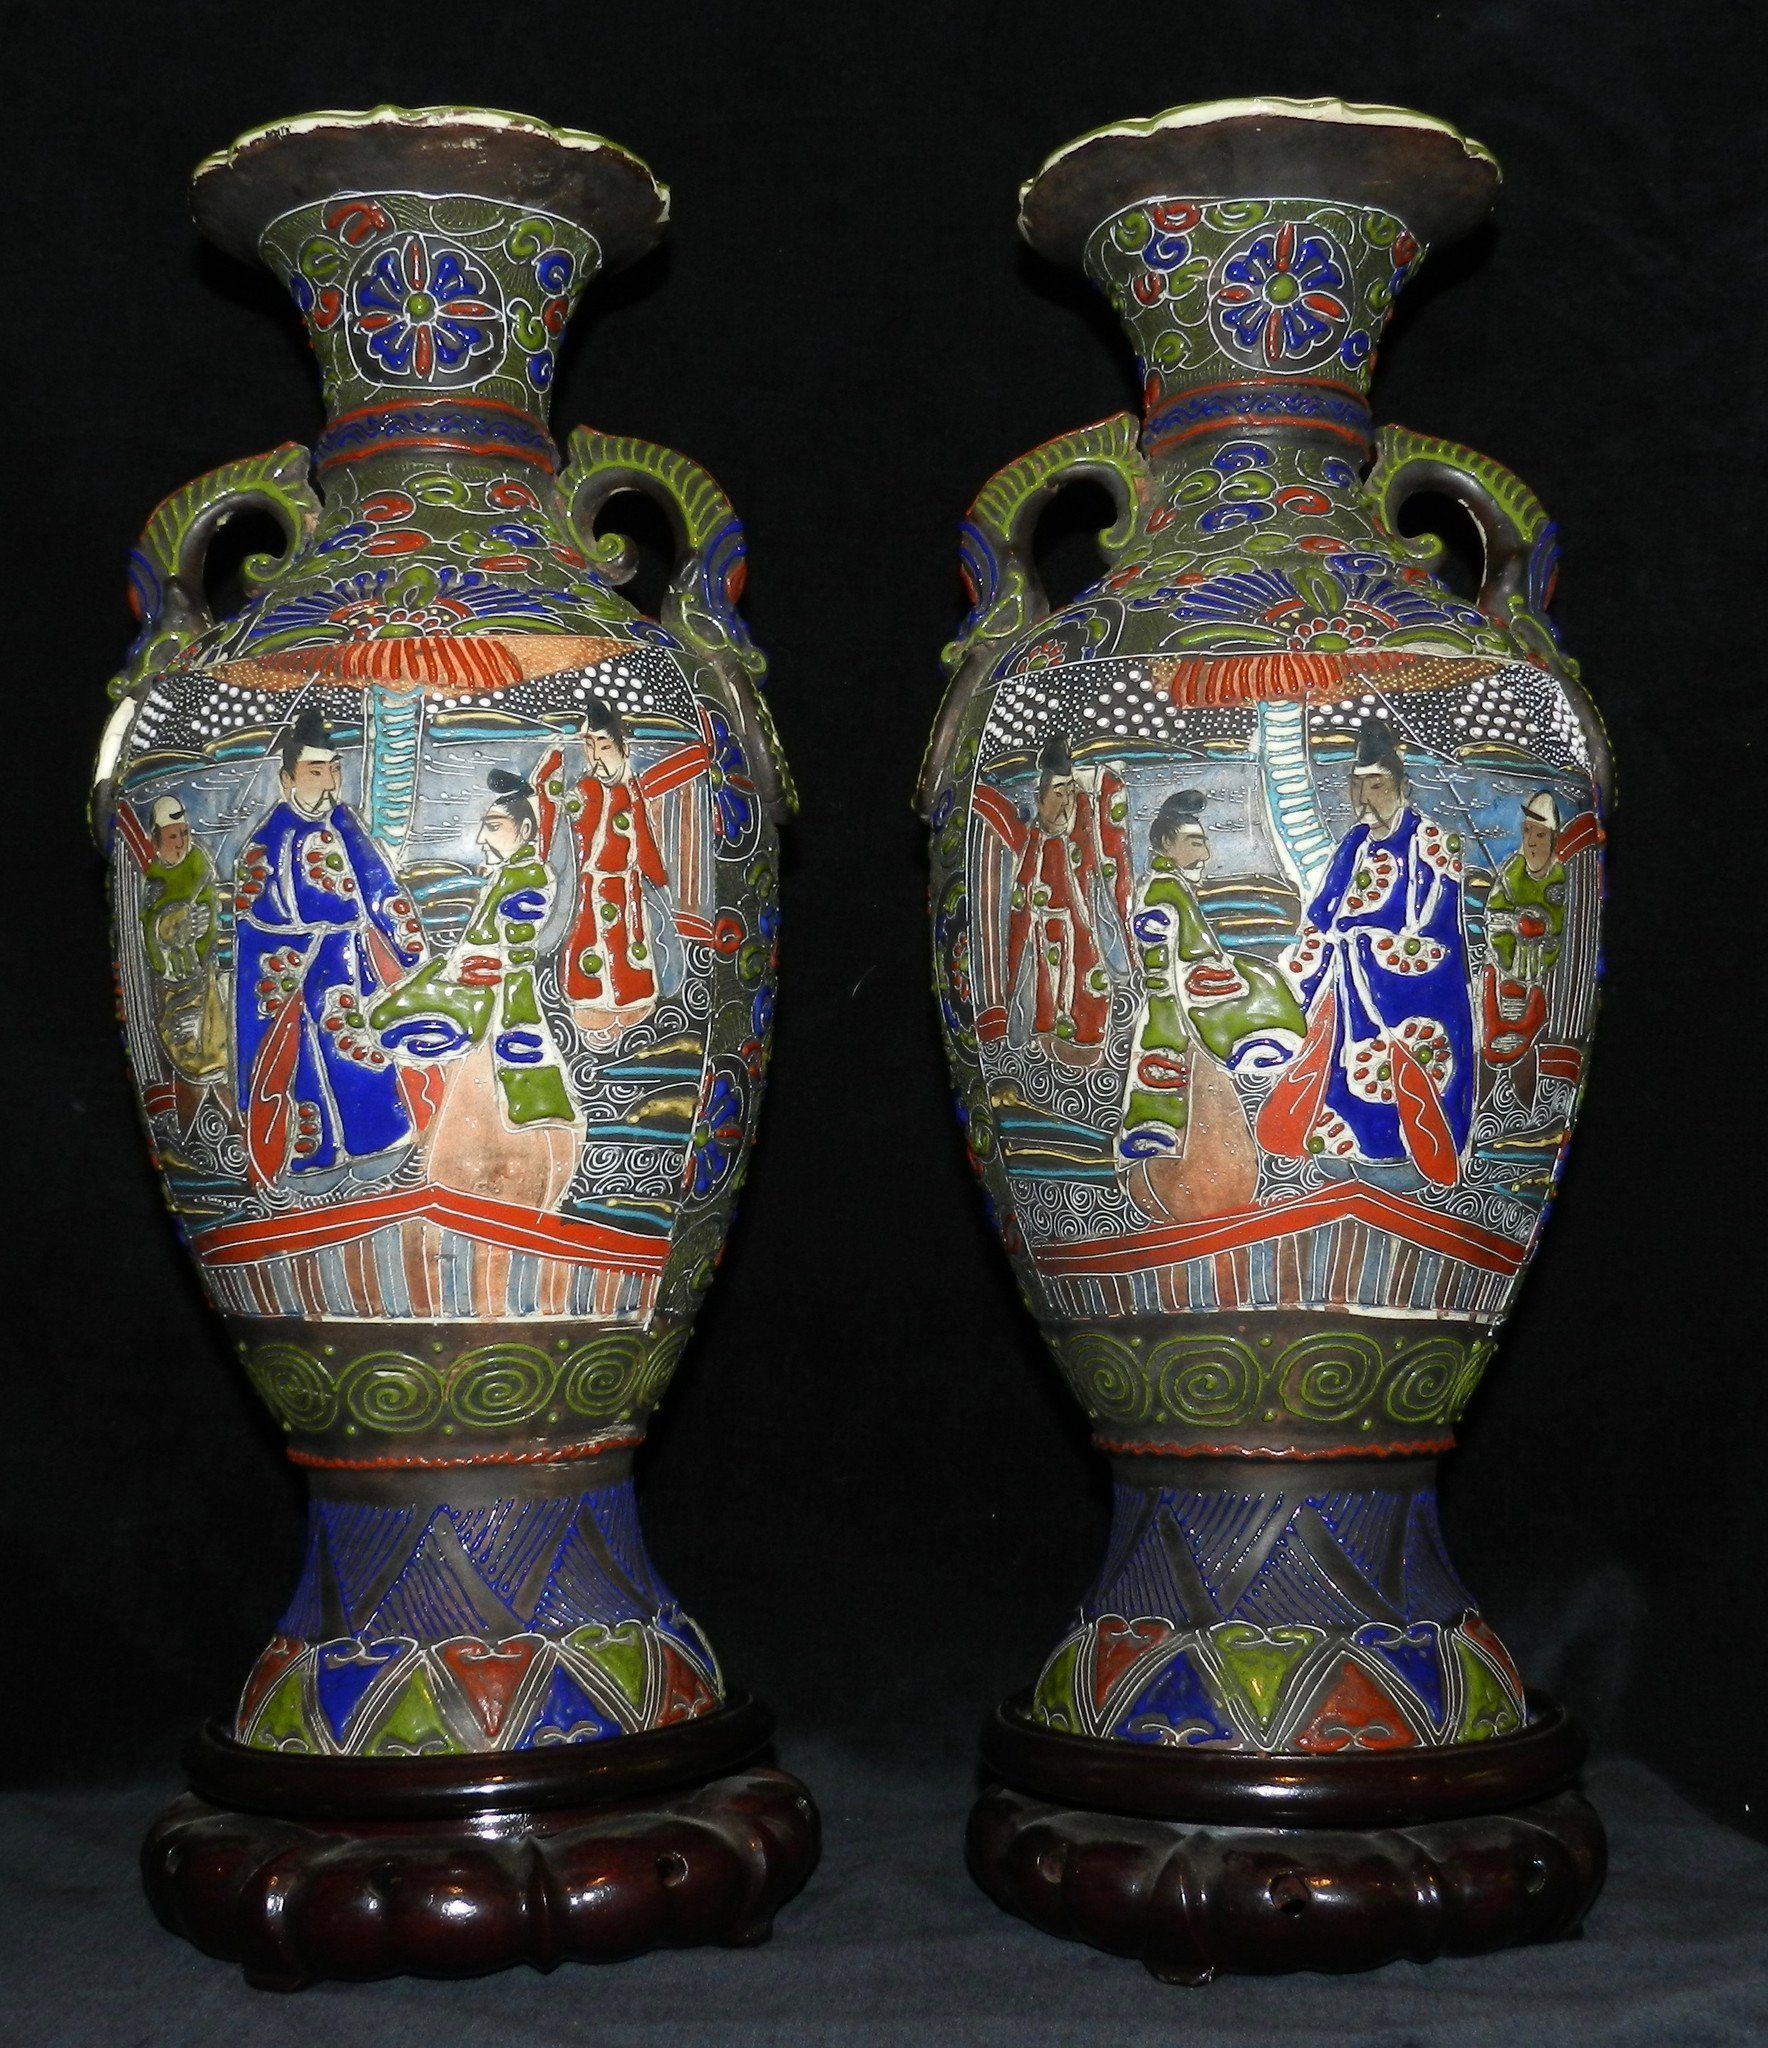 2 Antique Japanese Enamelled Vases Circa 1900 | Ceramics | Pinterest on decorative beads, decorative kitchenware, decorative porcelain, decorative containers, decorative art, decorative pillows, decorative curtains, decorative boxes, decorative bowls, decorative glassware, decorative pottery, decorative decanters, decorative cards, decorative bells, decorative index tabs, decorative perfume bottles, decorative glass, decorative planters, decorative flowers, decorative jugs,